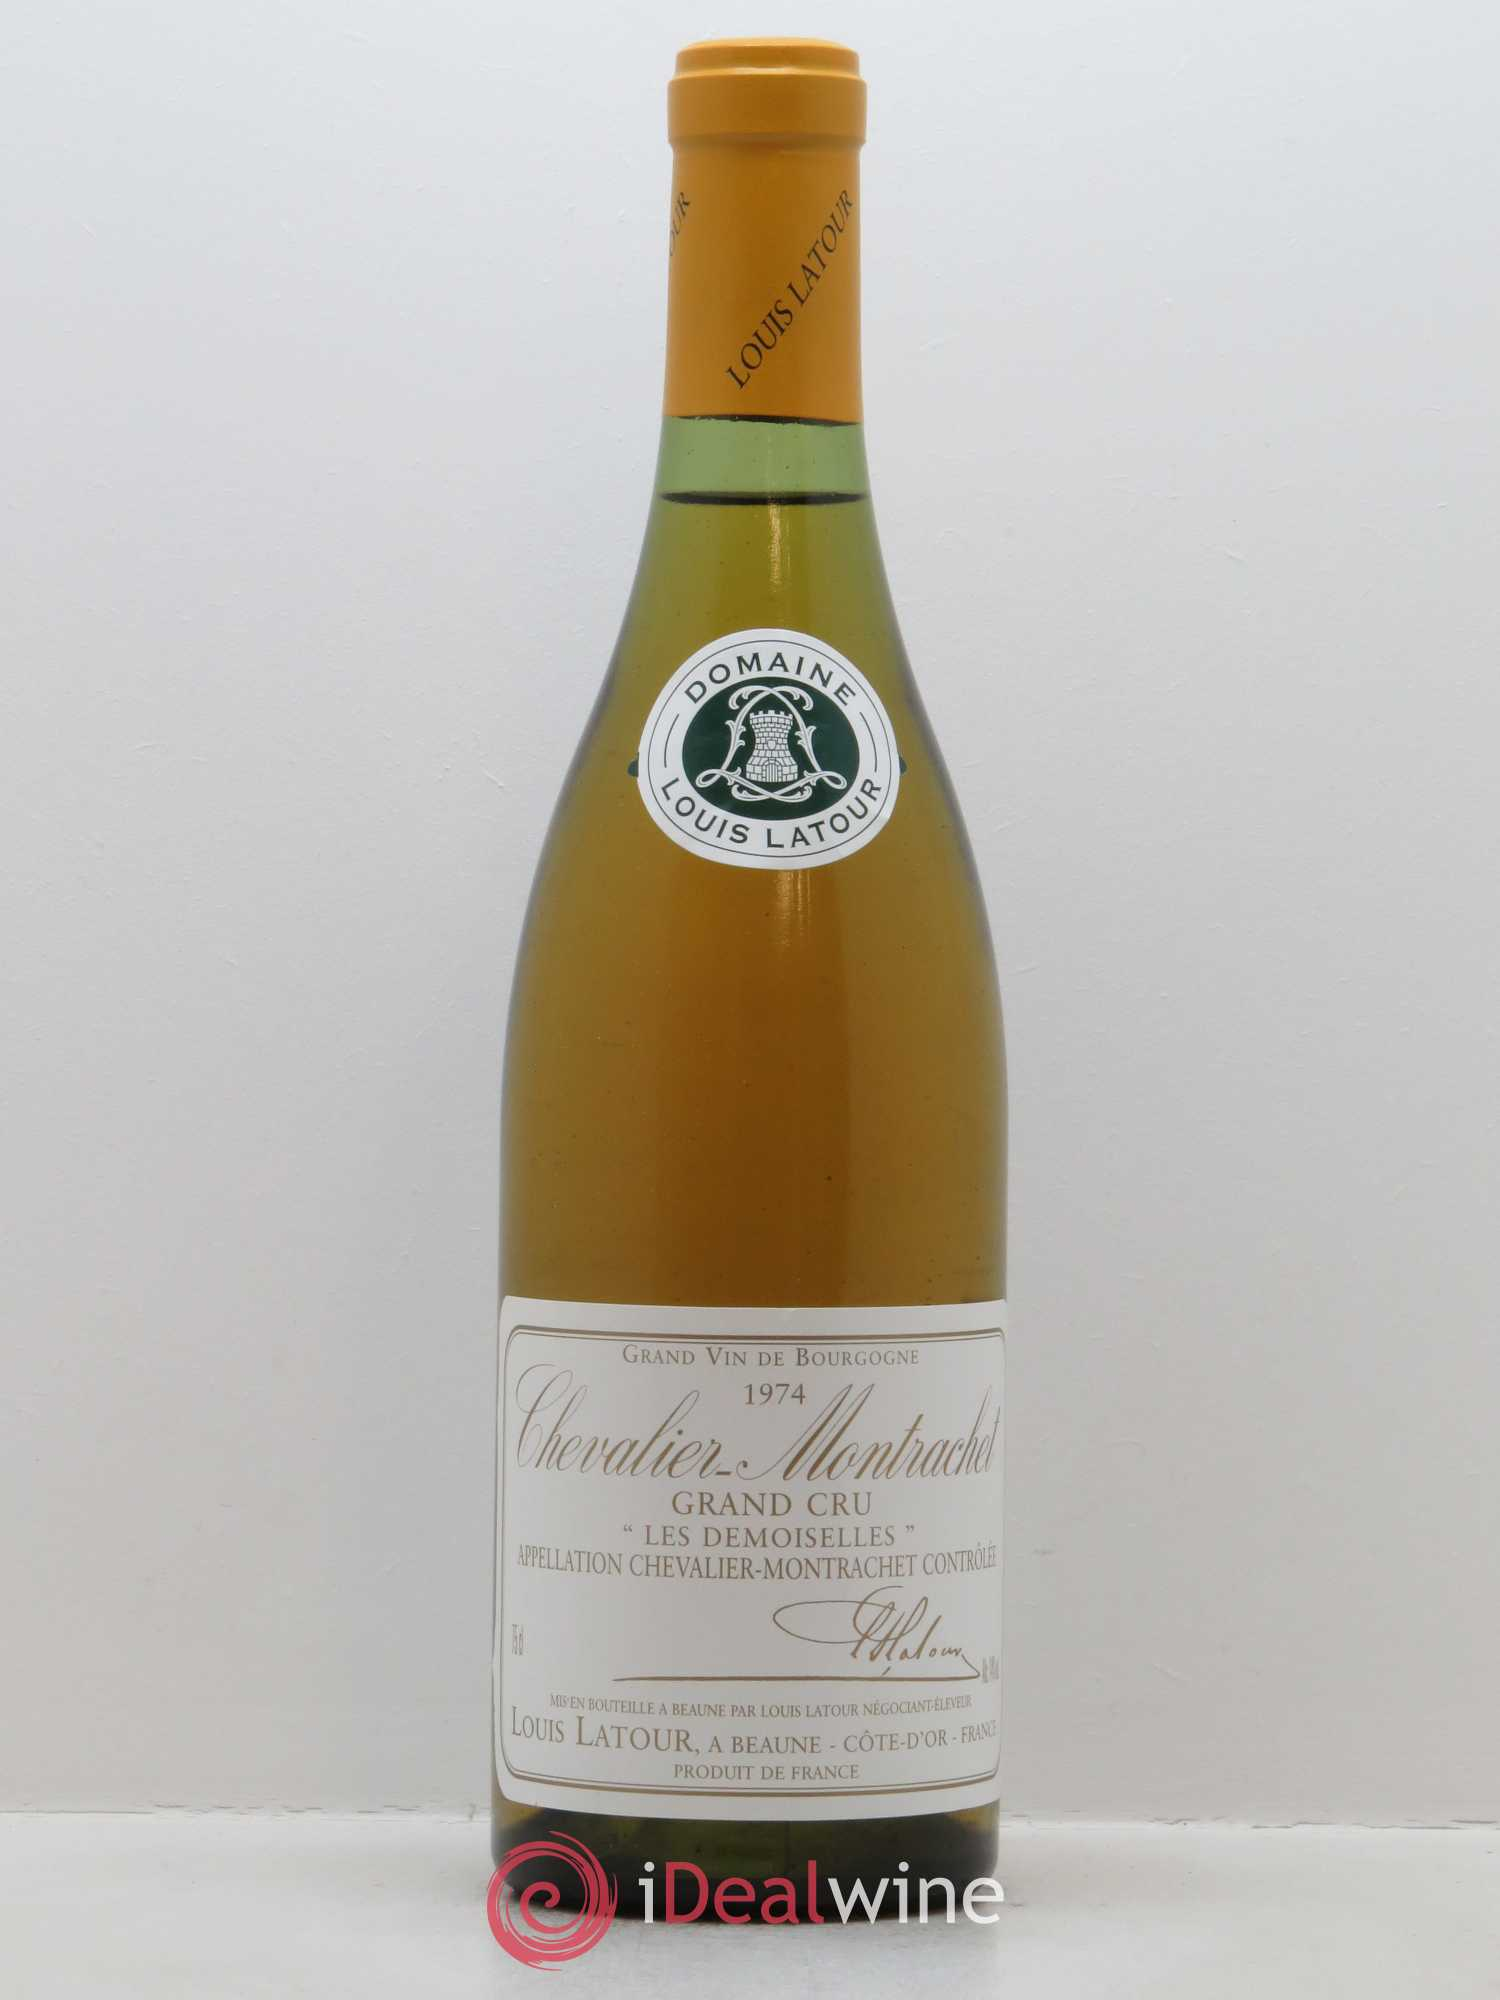 Chevalier-Montrachet Grand Cru Les Demoiselles Louis Latour (Domaine) (Unit Wooden Case) 1974 - Lot of 1 Bottle